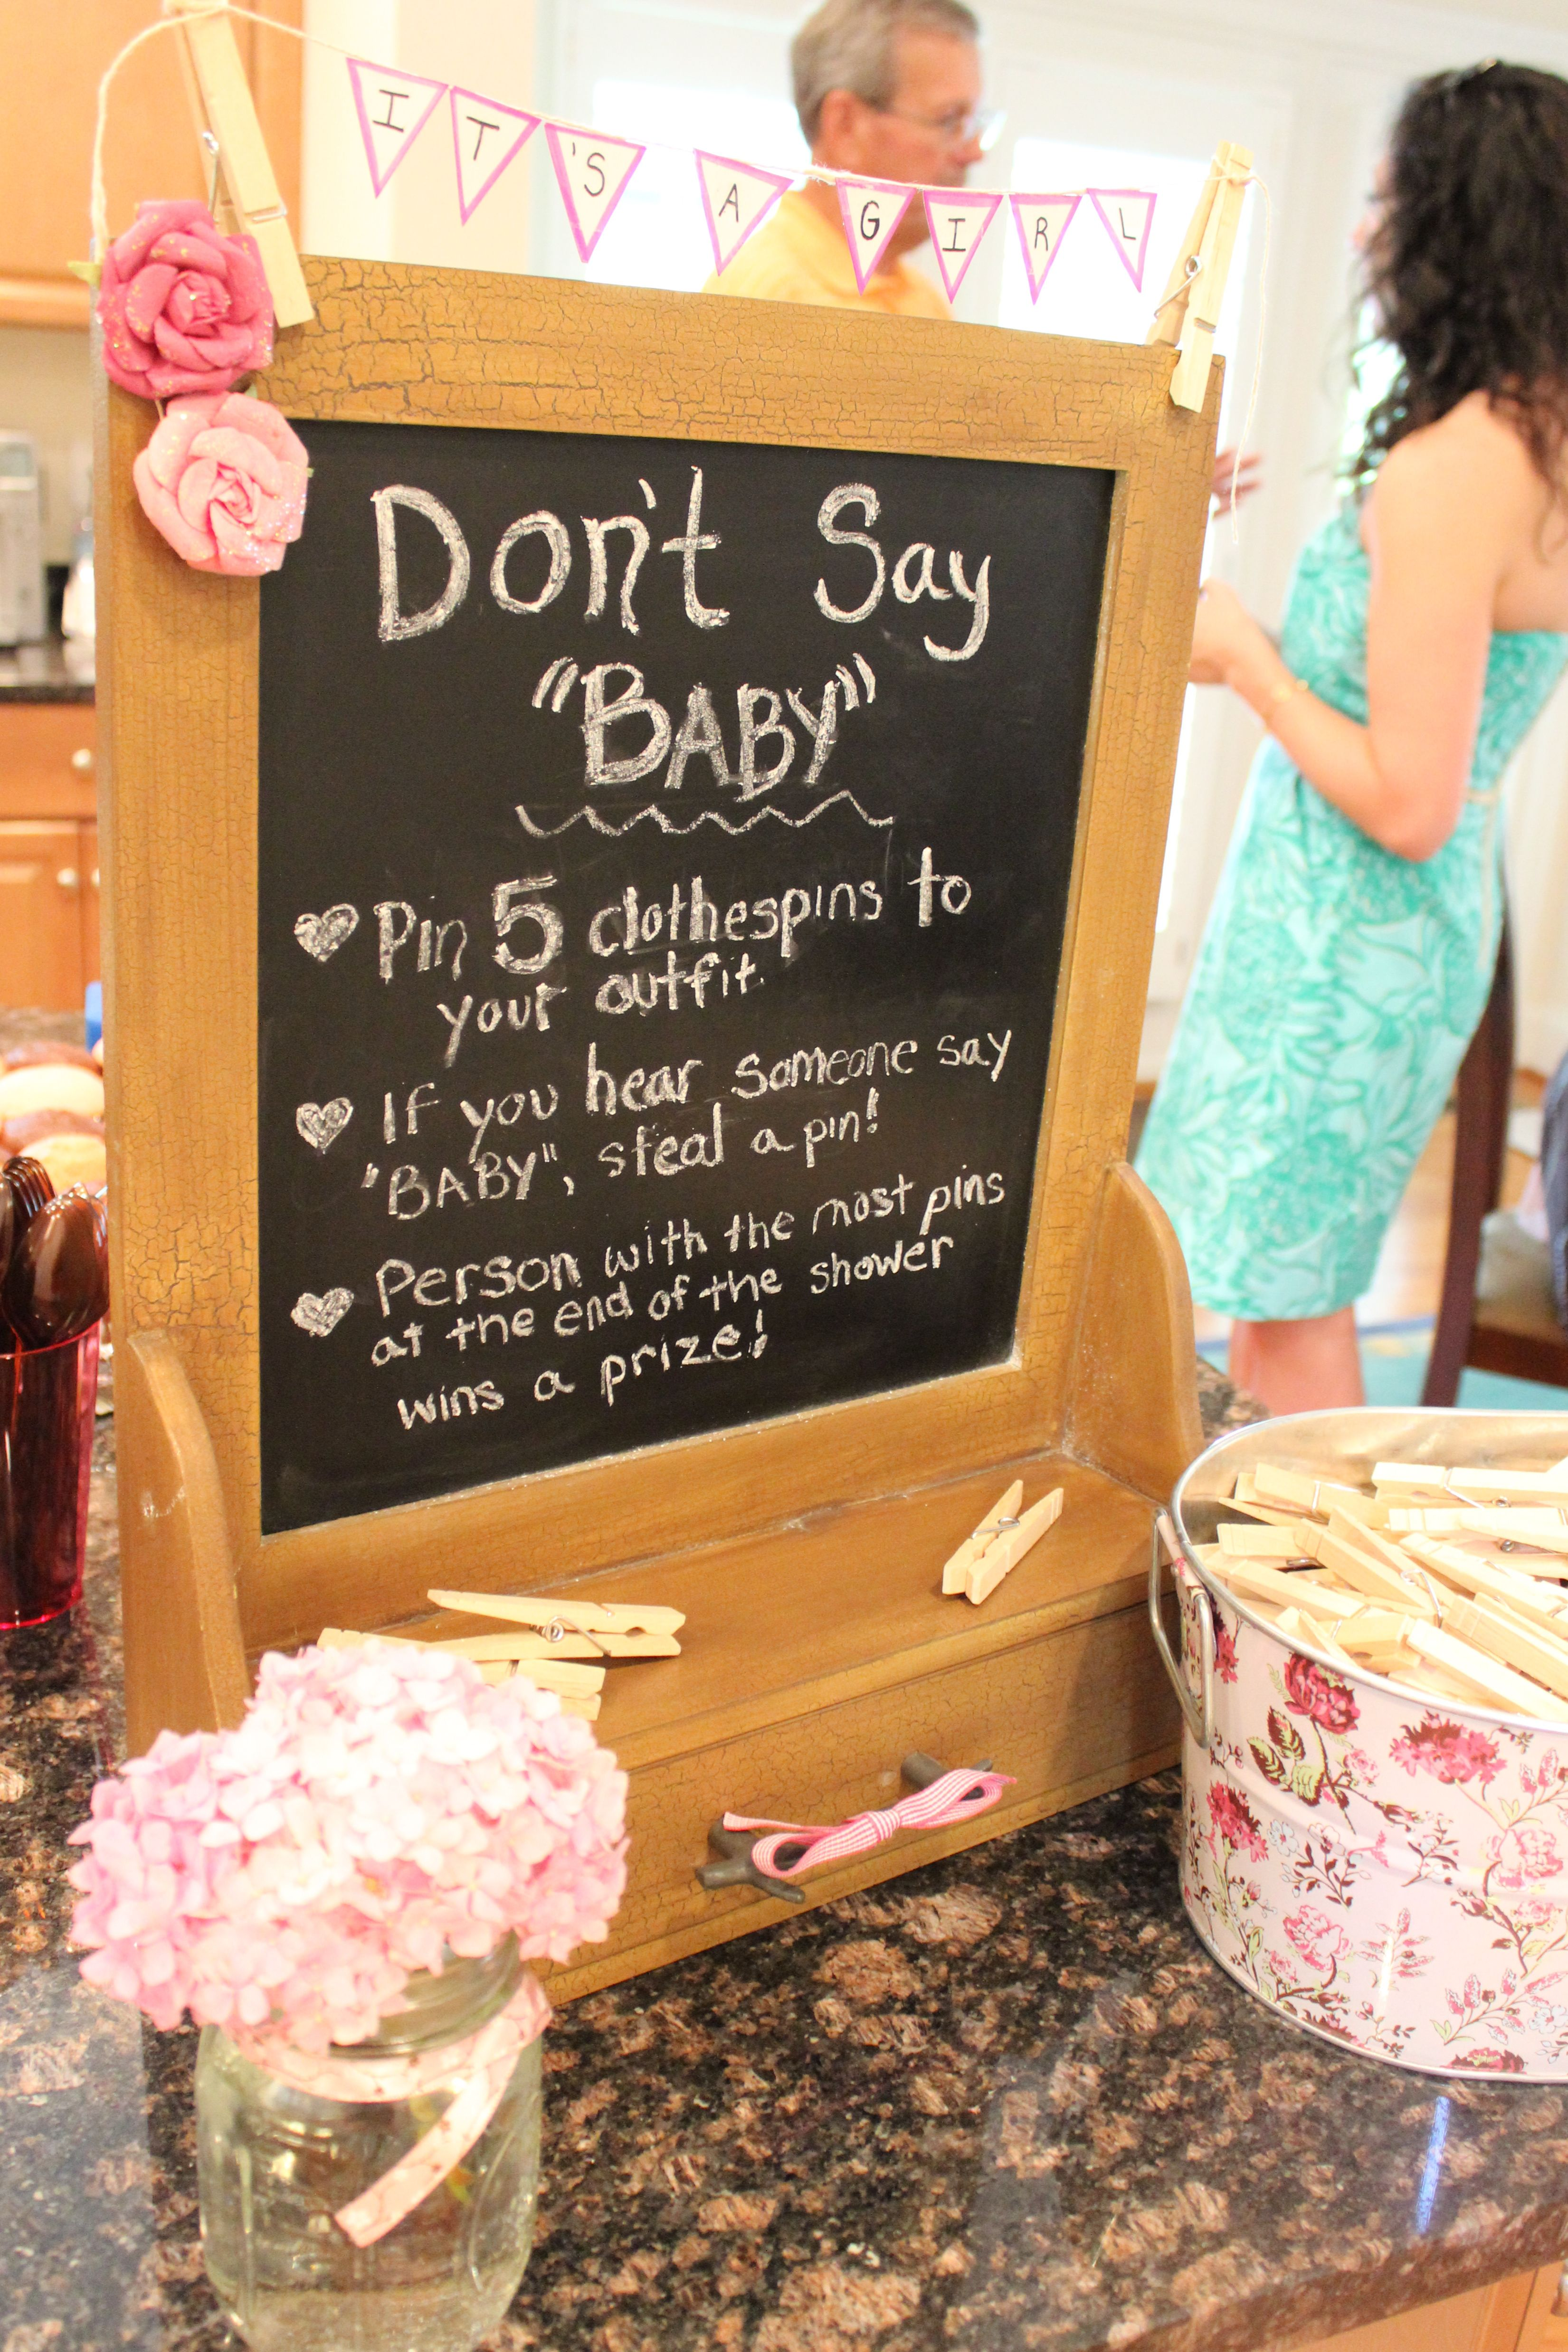 The Best Baby Shower Ideas Baby shower fun, Fun baby